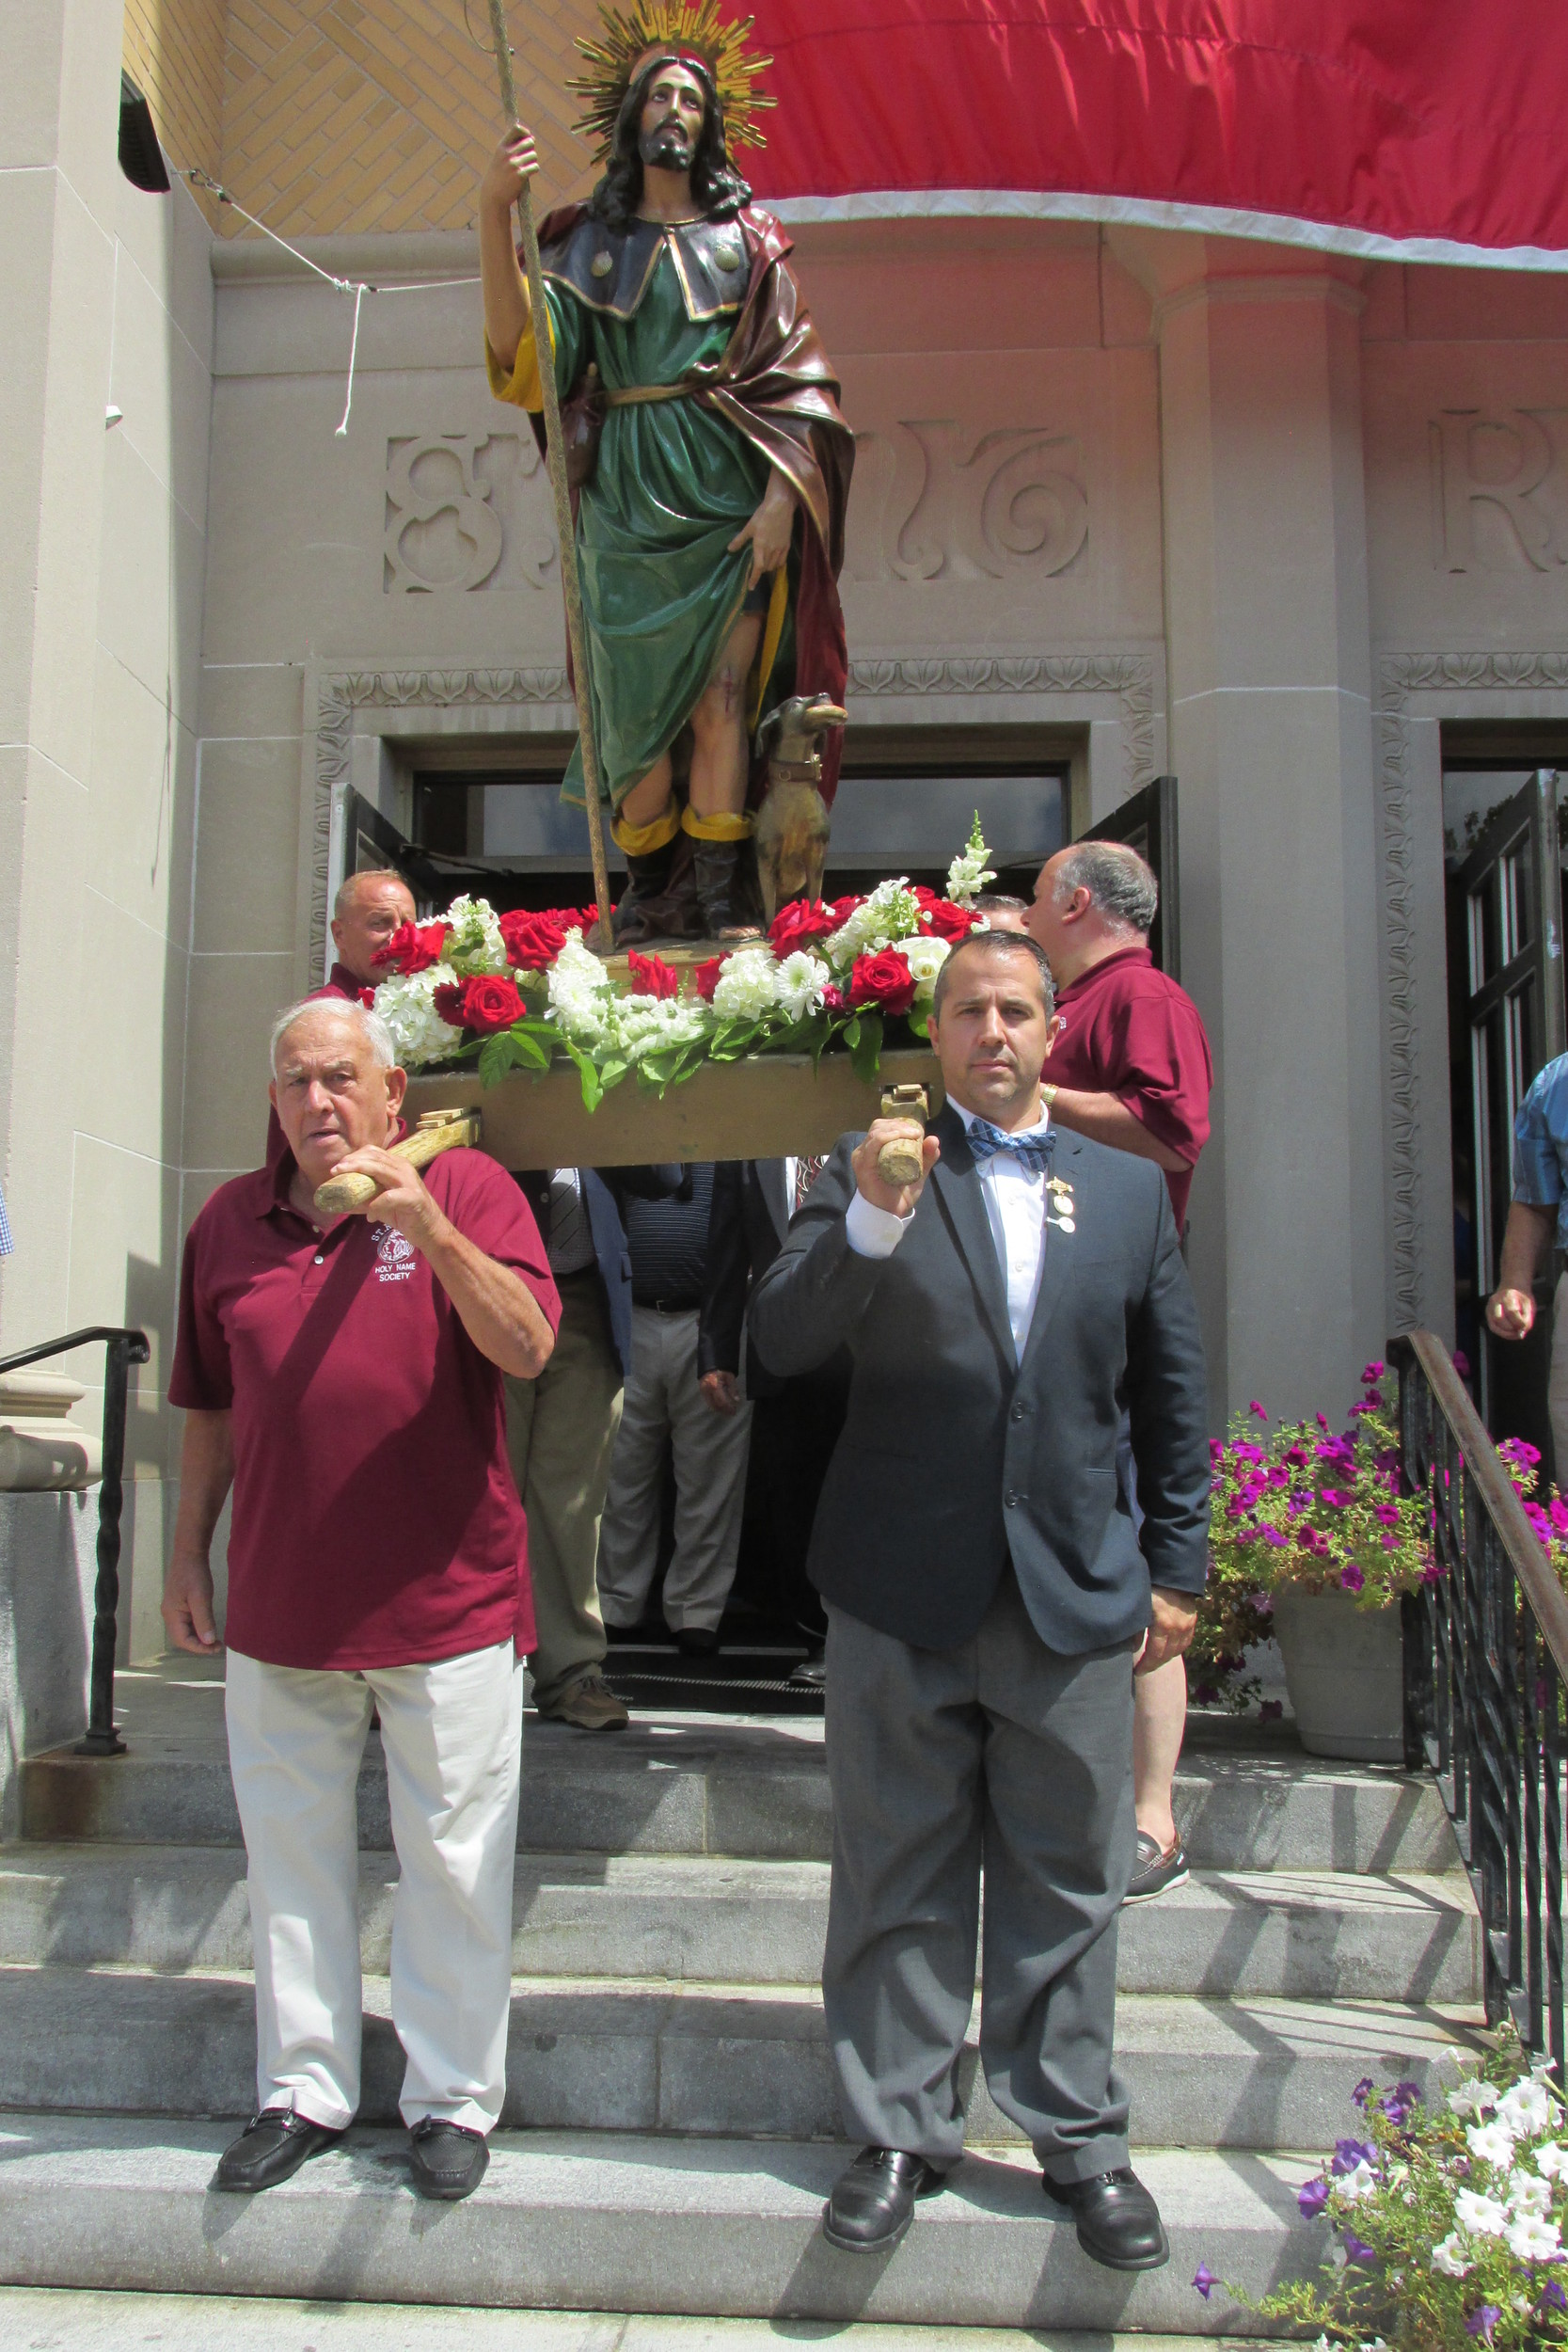 SPECIAL SCENE: Joe DeBenedetto and Al Lewis were the lead carriers of the Statute of Saint Rocco during Sunday's sun-covered procession that is a Rite of the parish's annual Feast and Festival.